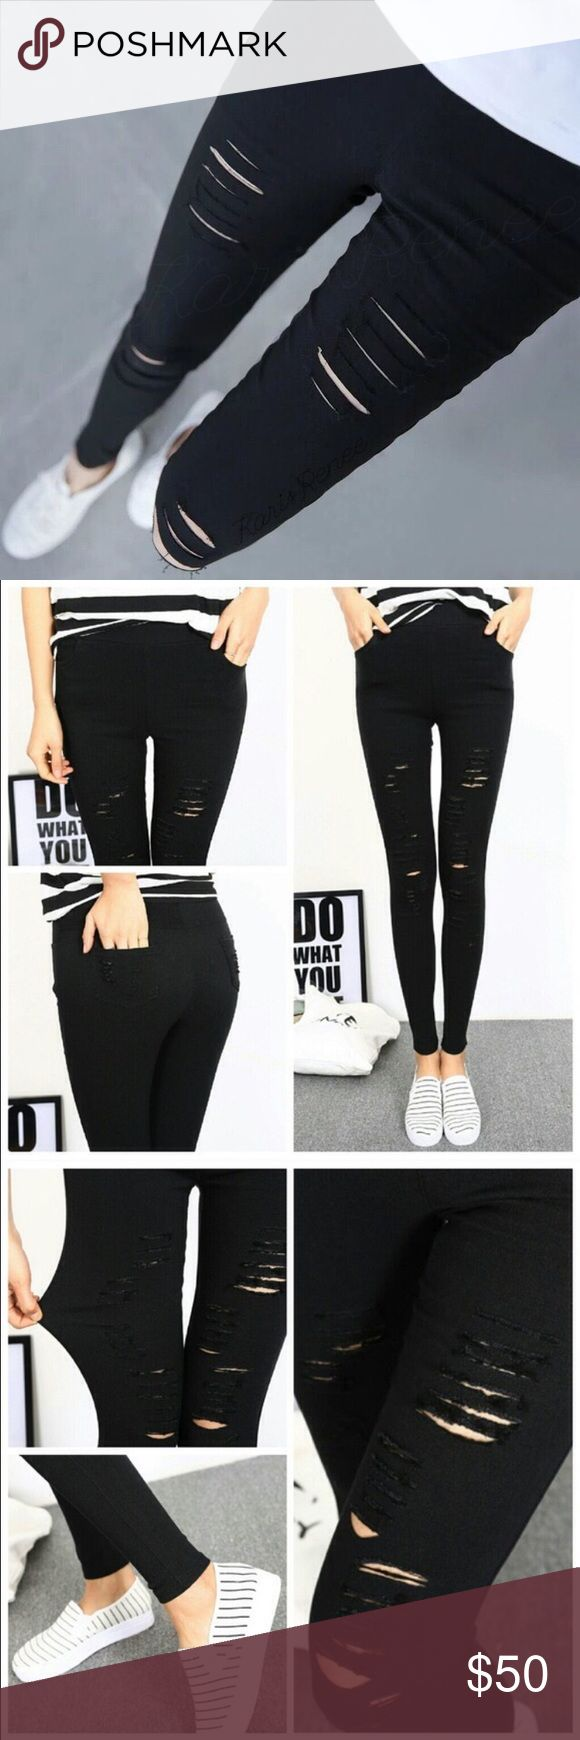 Super stretch distressed black skinnies These skinny pants literally stretch across sizes! Marked XL, these look tiny but stretch to accommodate anywhere from size small to large. The small framed model is wearing these in XL, can you believe it?! It's more like a 1 size fits all pant (Which is hard to find!) //stretch fabric looks like denim // intentionally textured featuring side and back pockets, these black skinny pants are perfect for your modern wardrobe. Pictures are of actual…